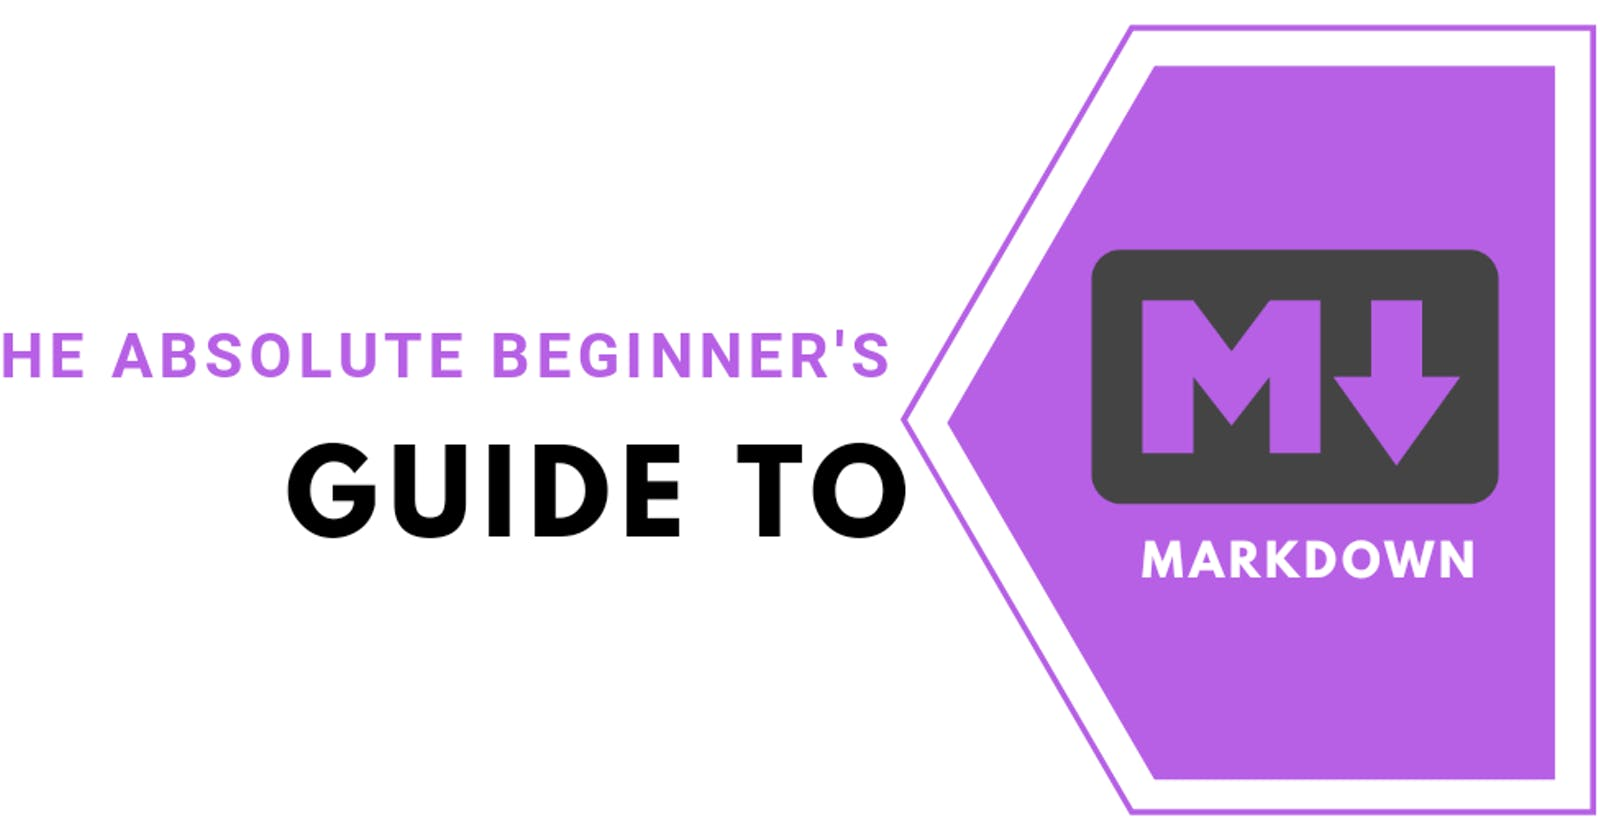 Markdown - The Absolute Beginner's Guide